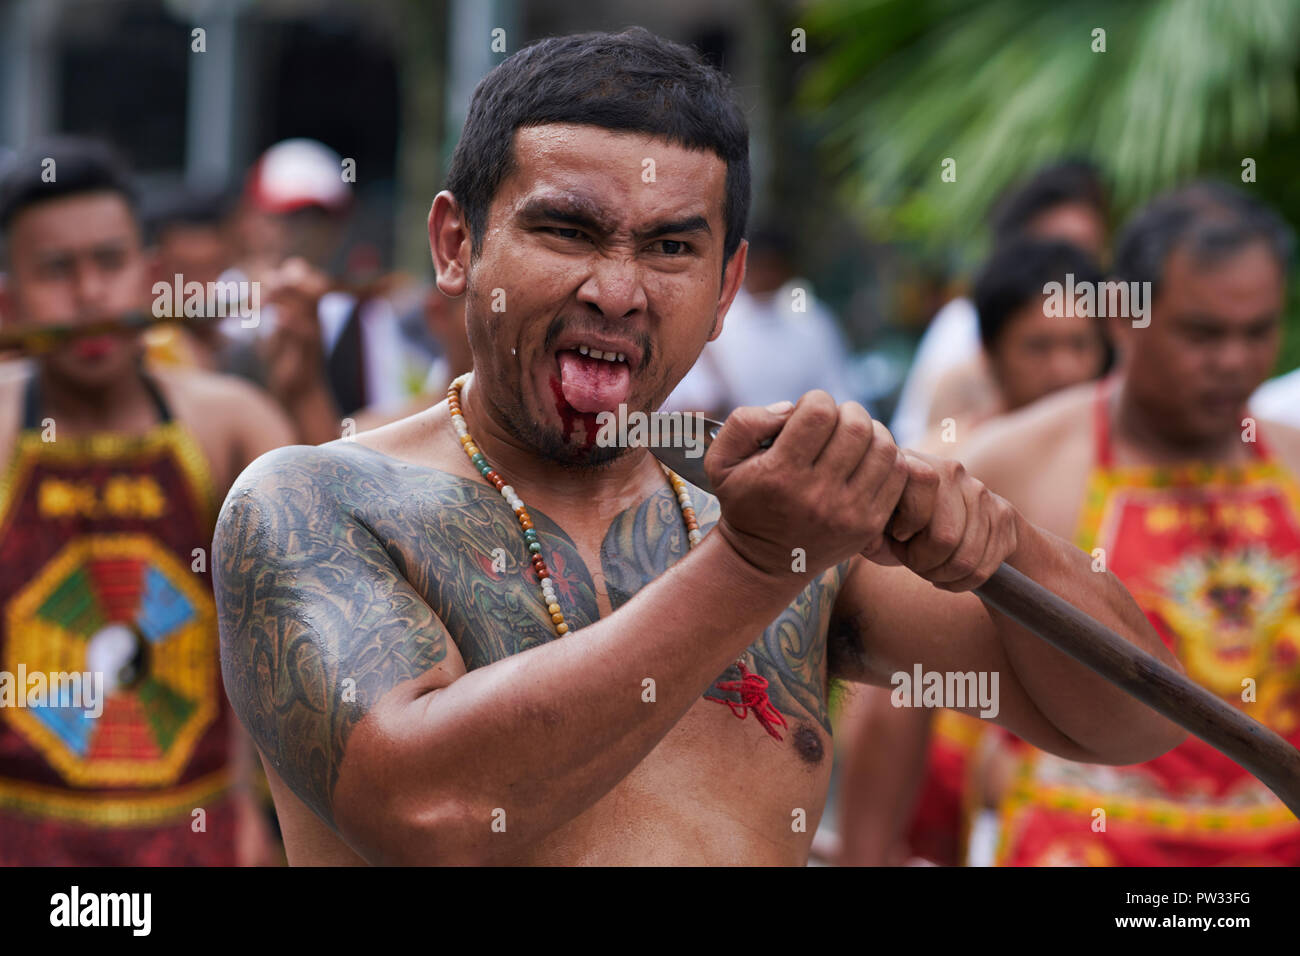 A street procession during the annual Vegetarian Festival in Phuket, Thailand, during which this participant repeatedly cuts his tongue - Stock Image